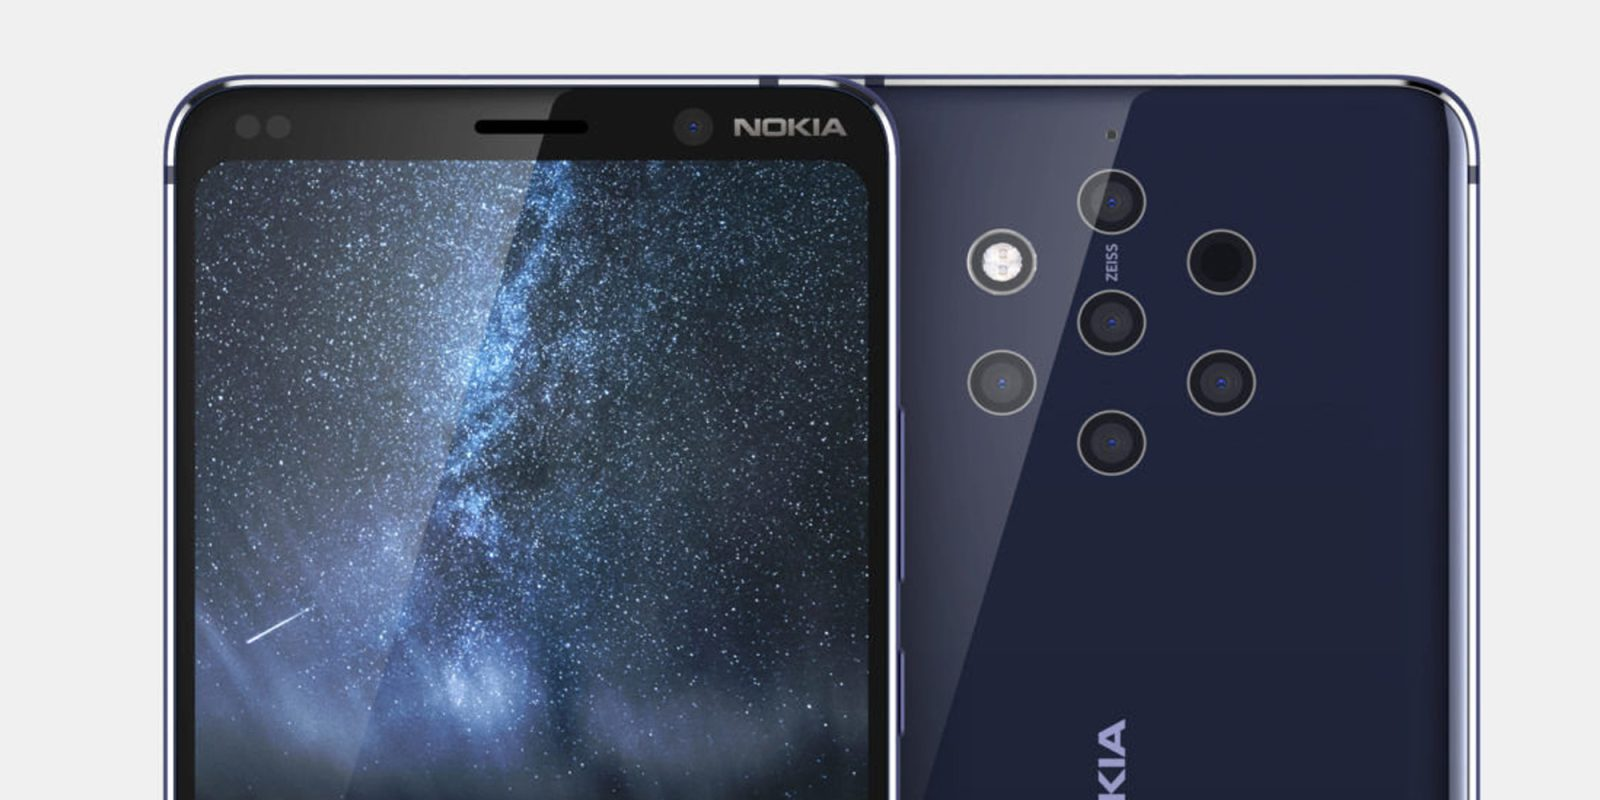 Leaked Teaser Suggest Penta-Lens Camera Setup, 6 GB Ram and Snapdragon 845 SoC on Nokia 9 PureView.